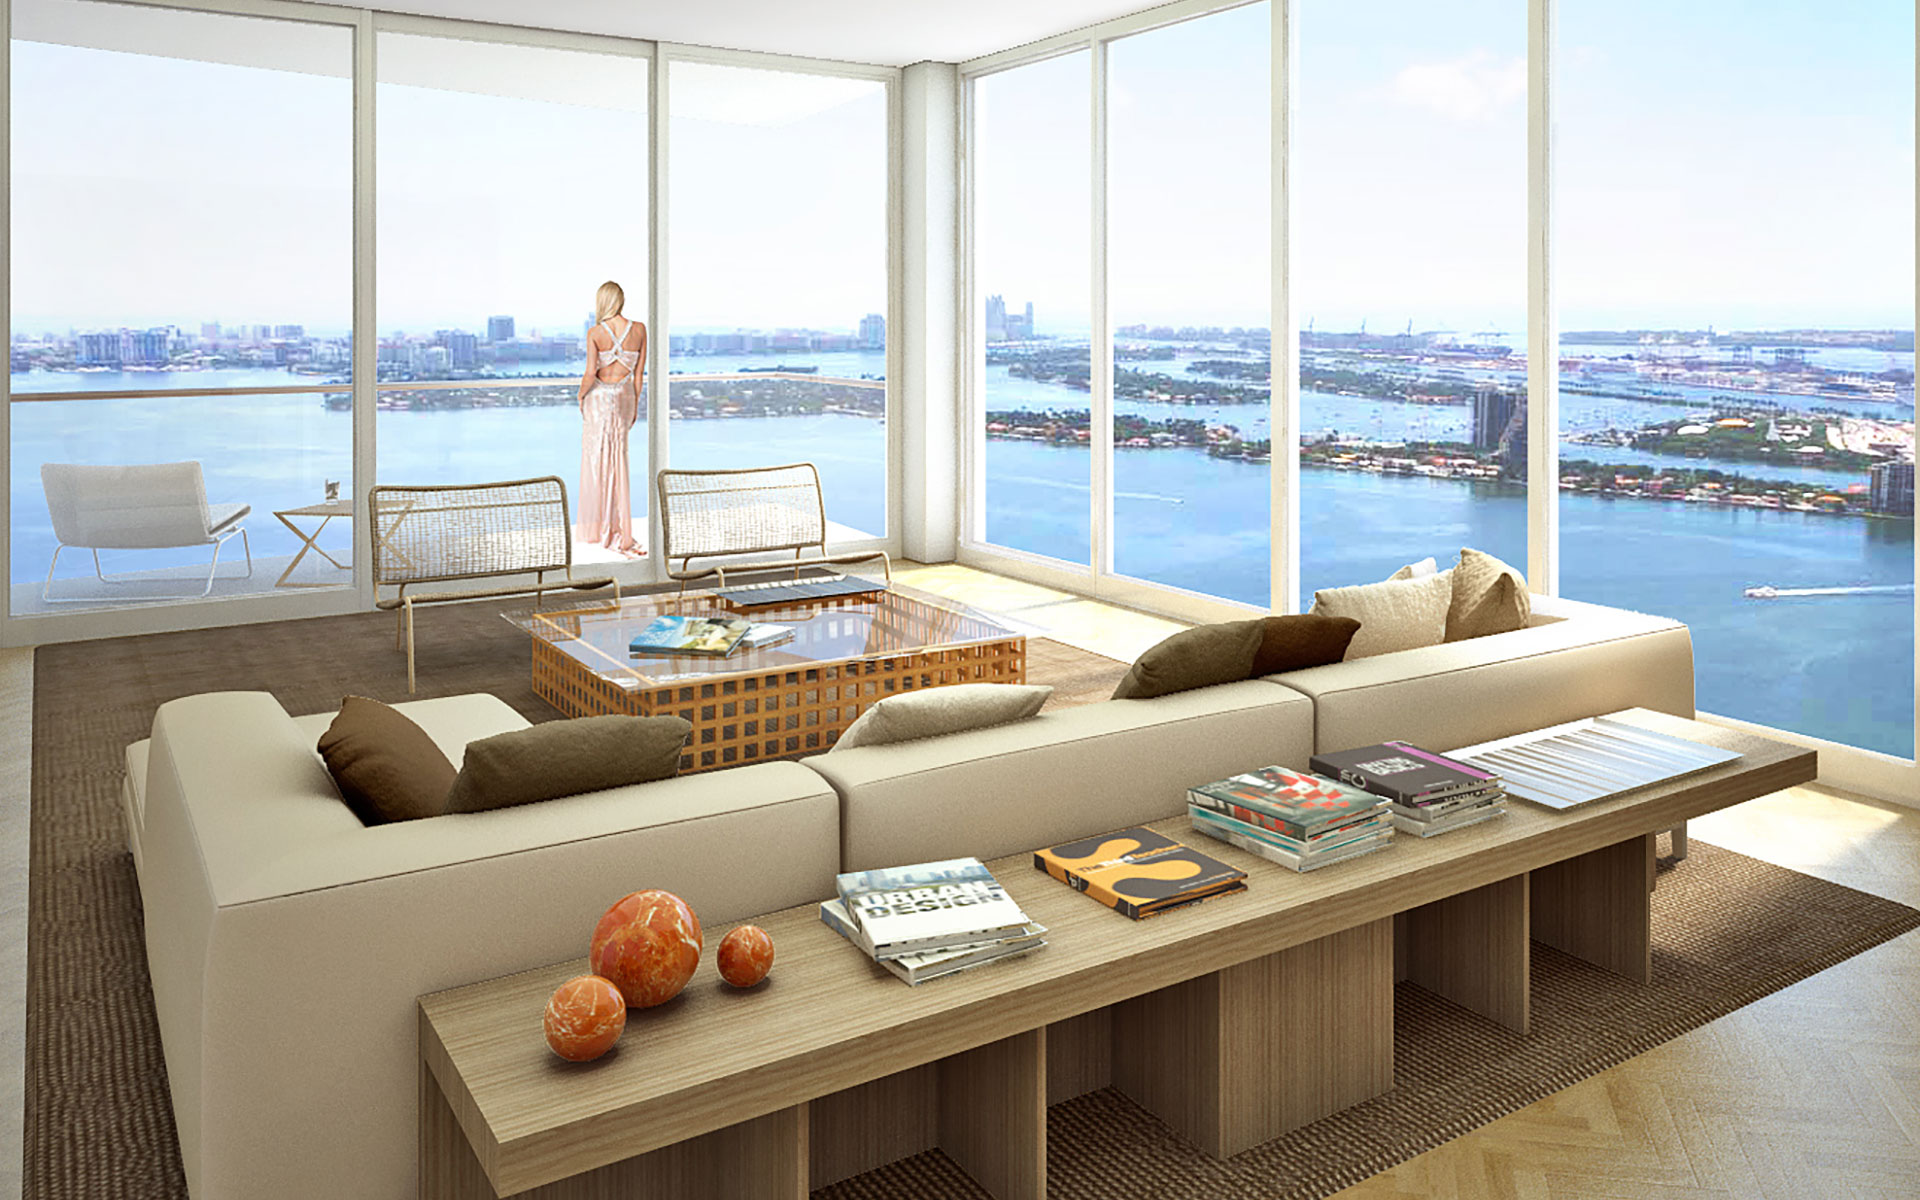 icon-bay-condo-interiors-miami